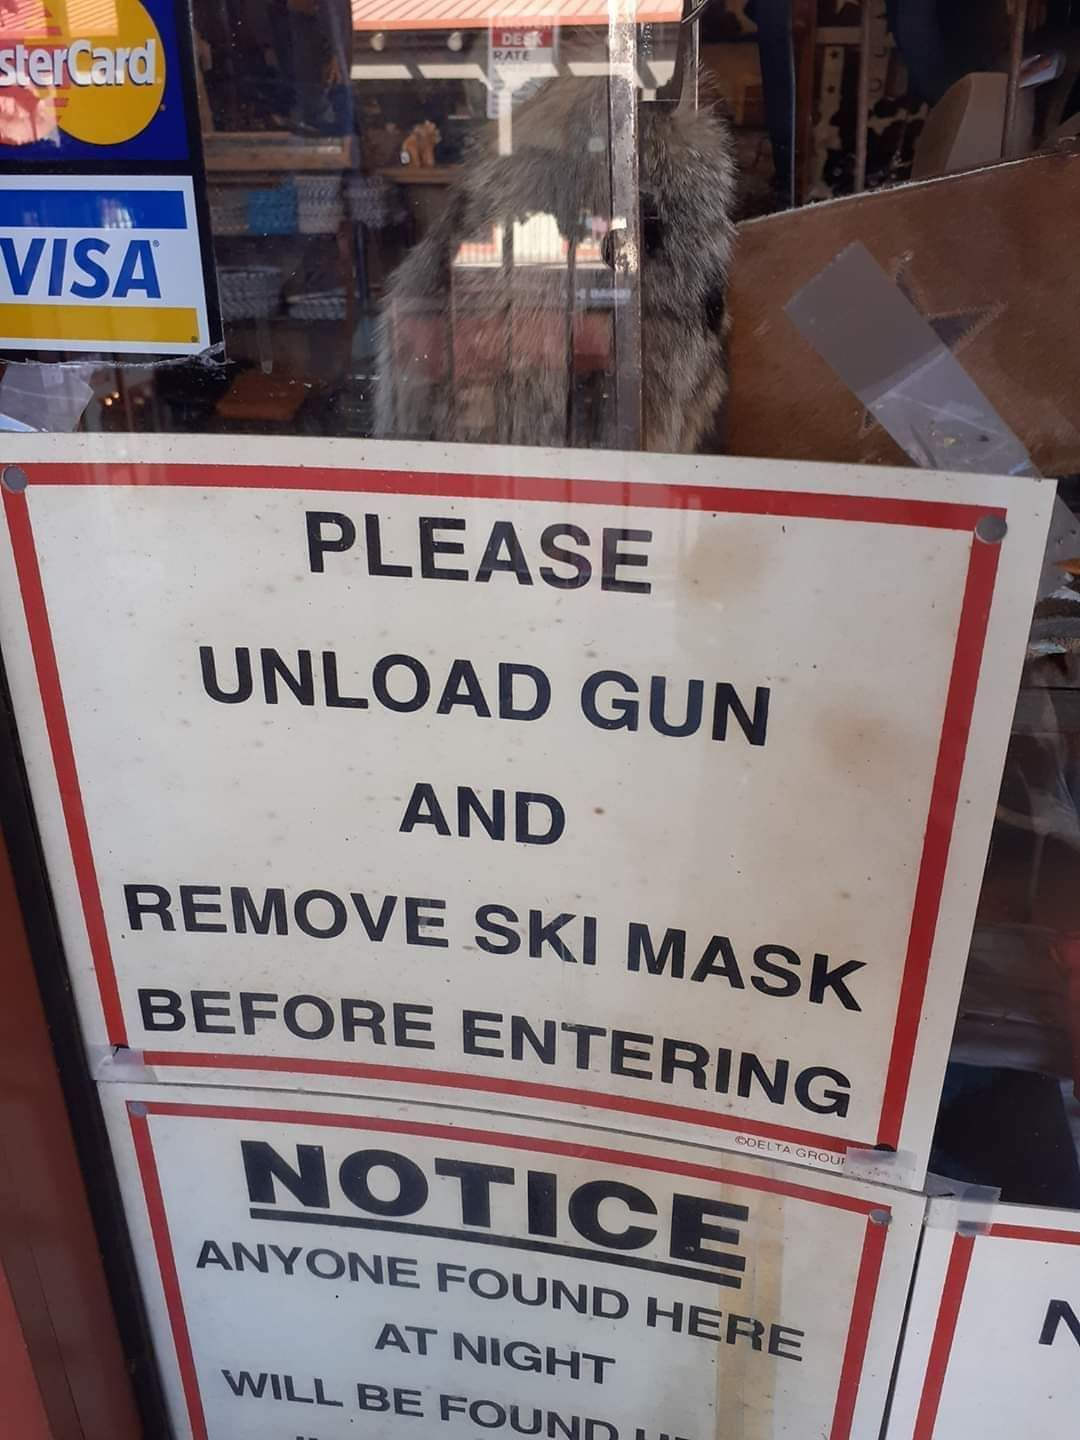 Well that solves our robbery problem.